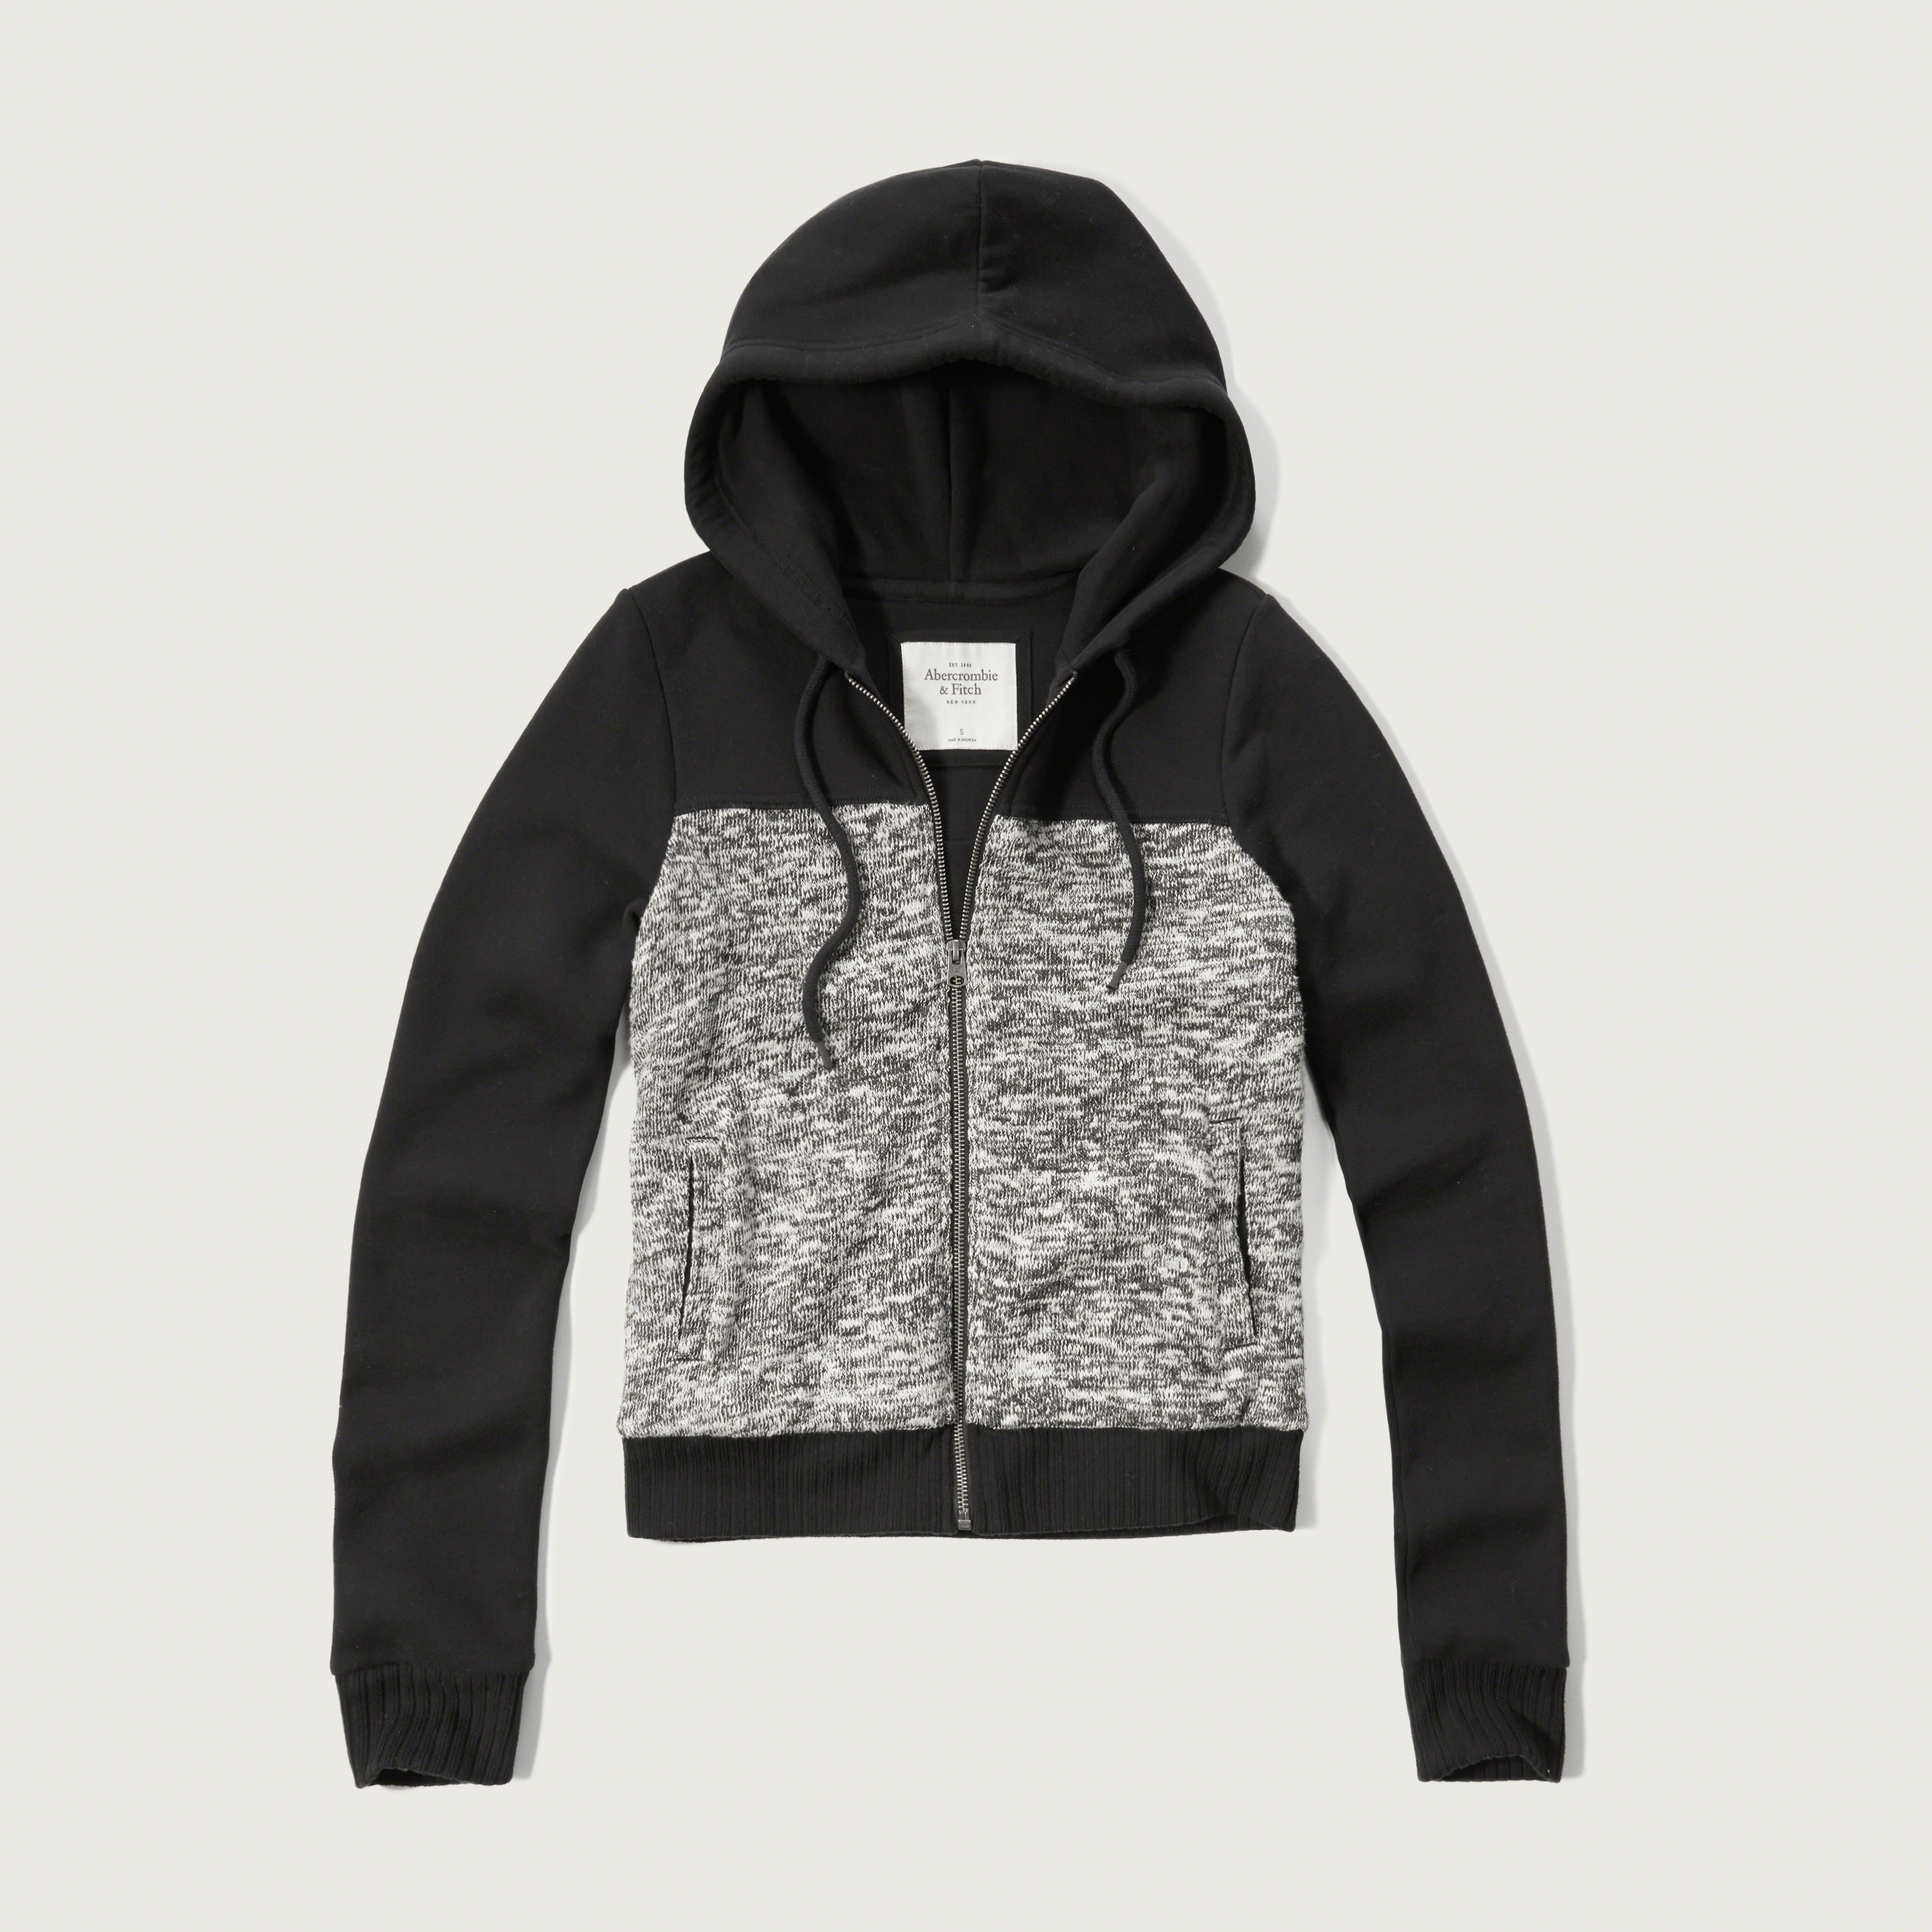 Abercrombie & Fitch Boucle Hoodie In Black